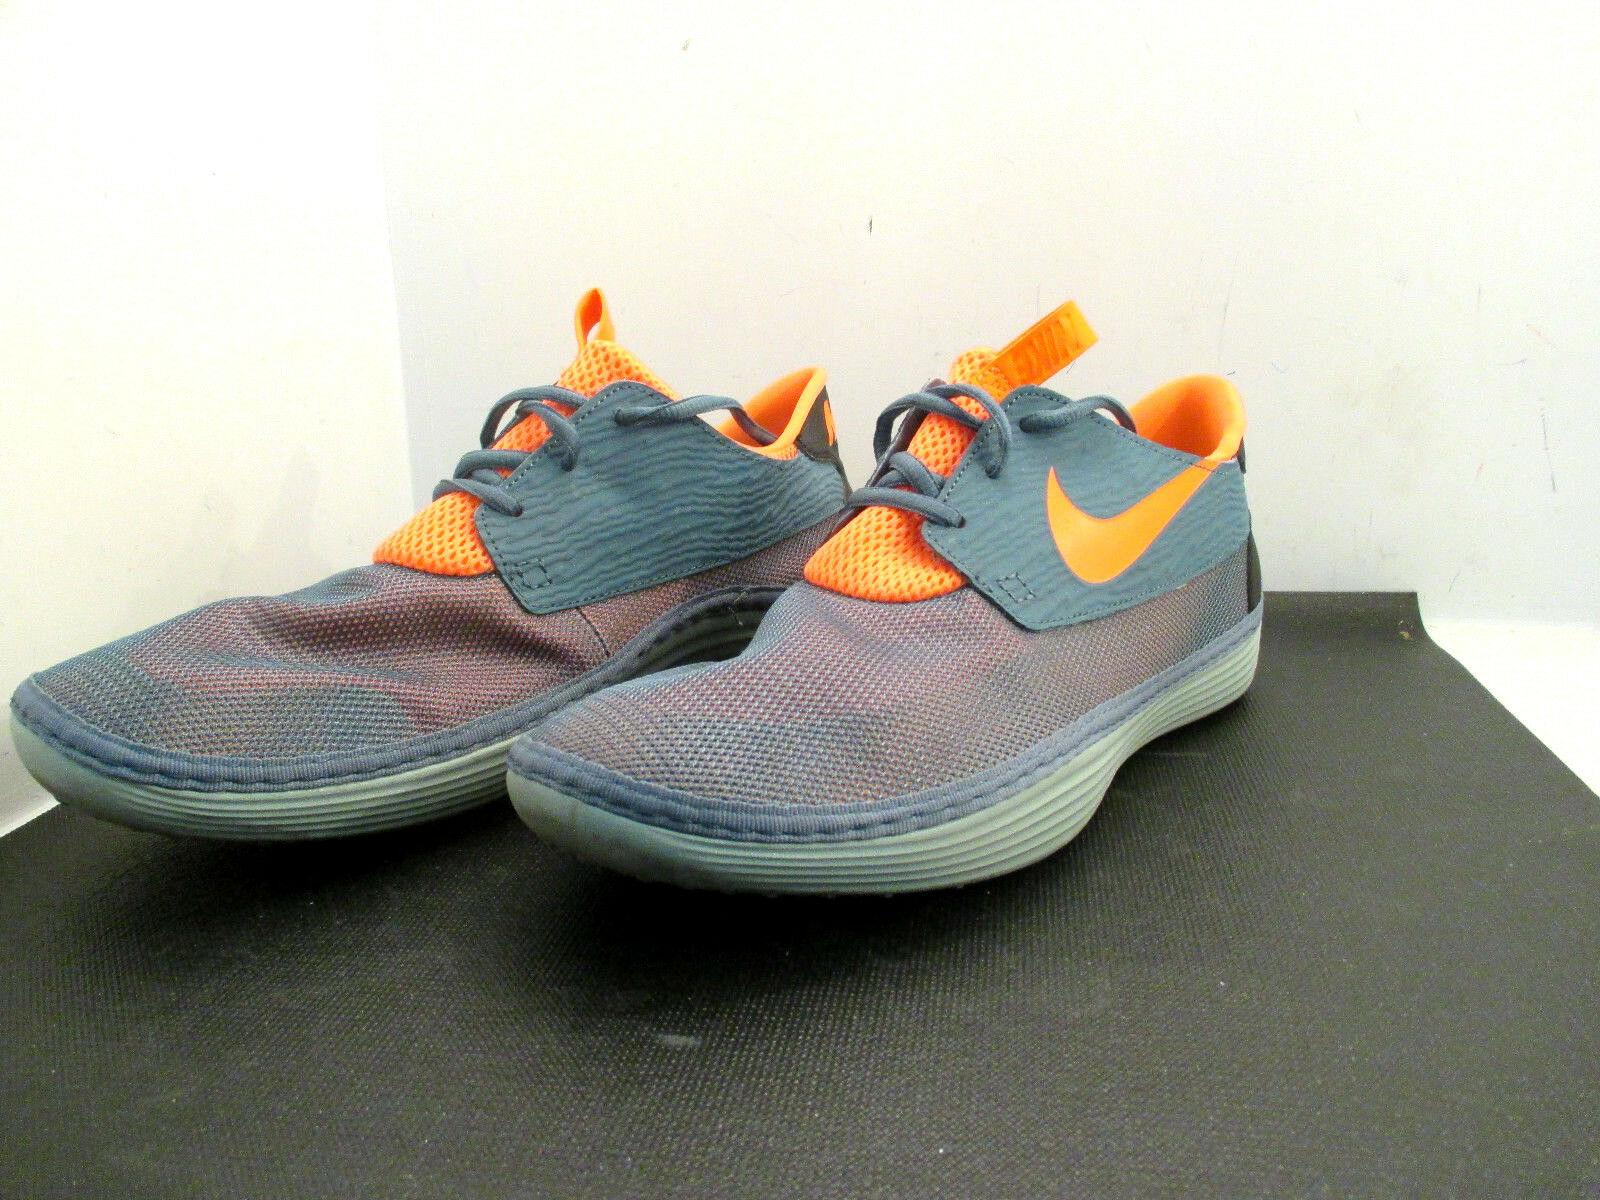 chaussures nike solarsoft moccasin 555301-480 555301-480 555301-480 occasionnel 669700